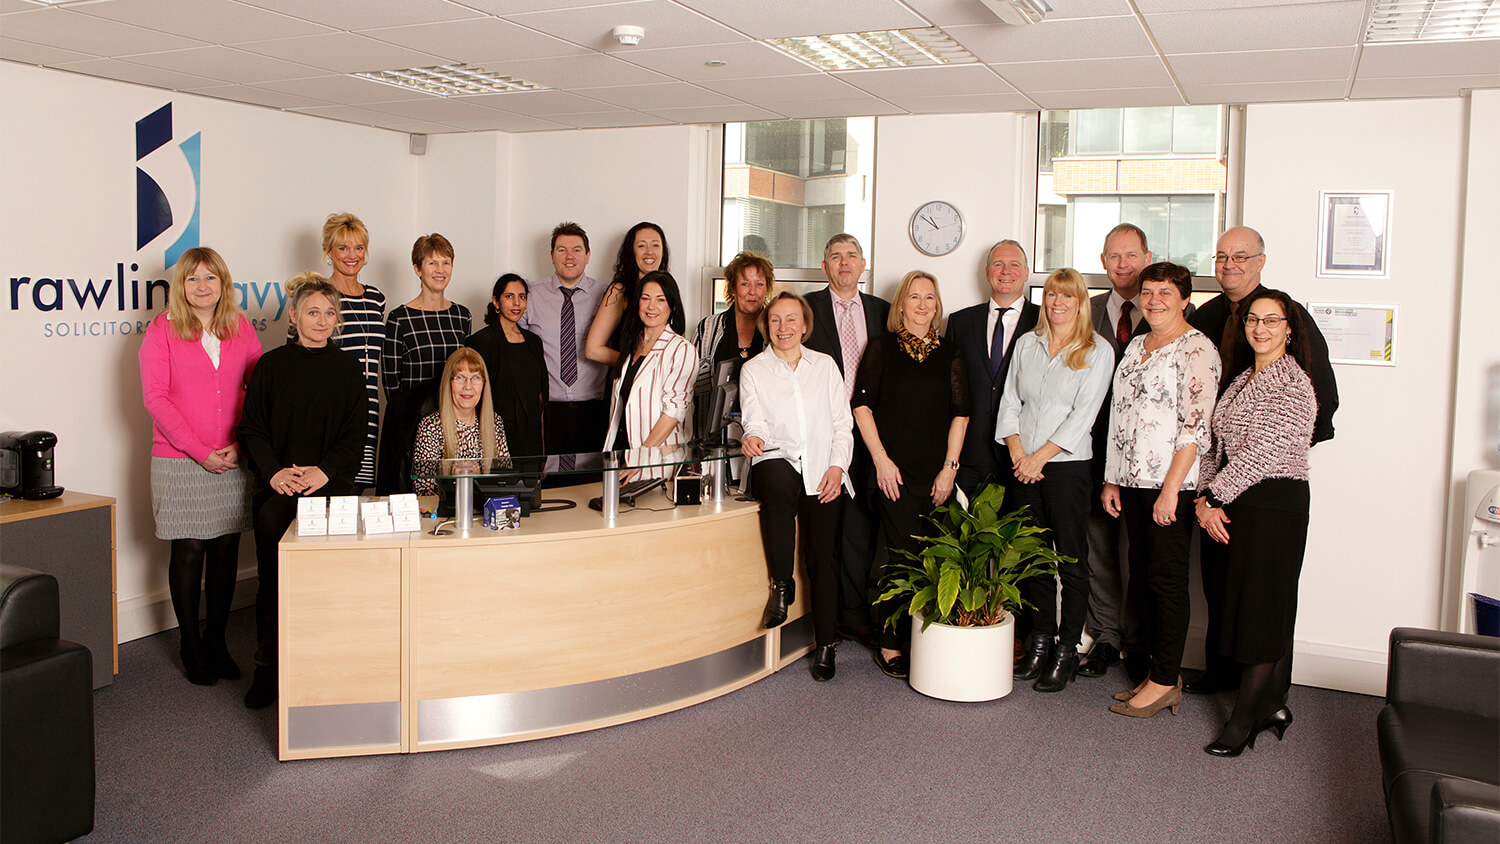 Rawlins Davy Solicitors team